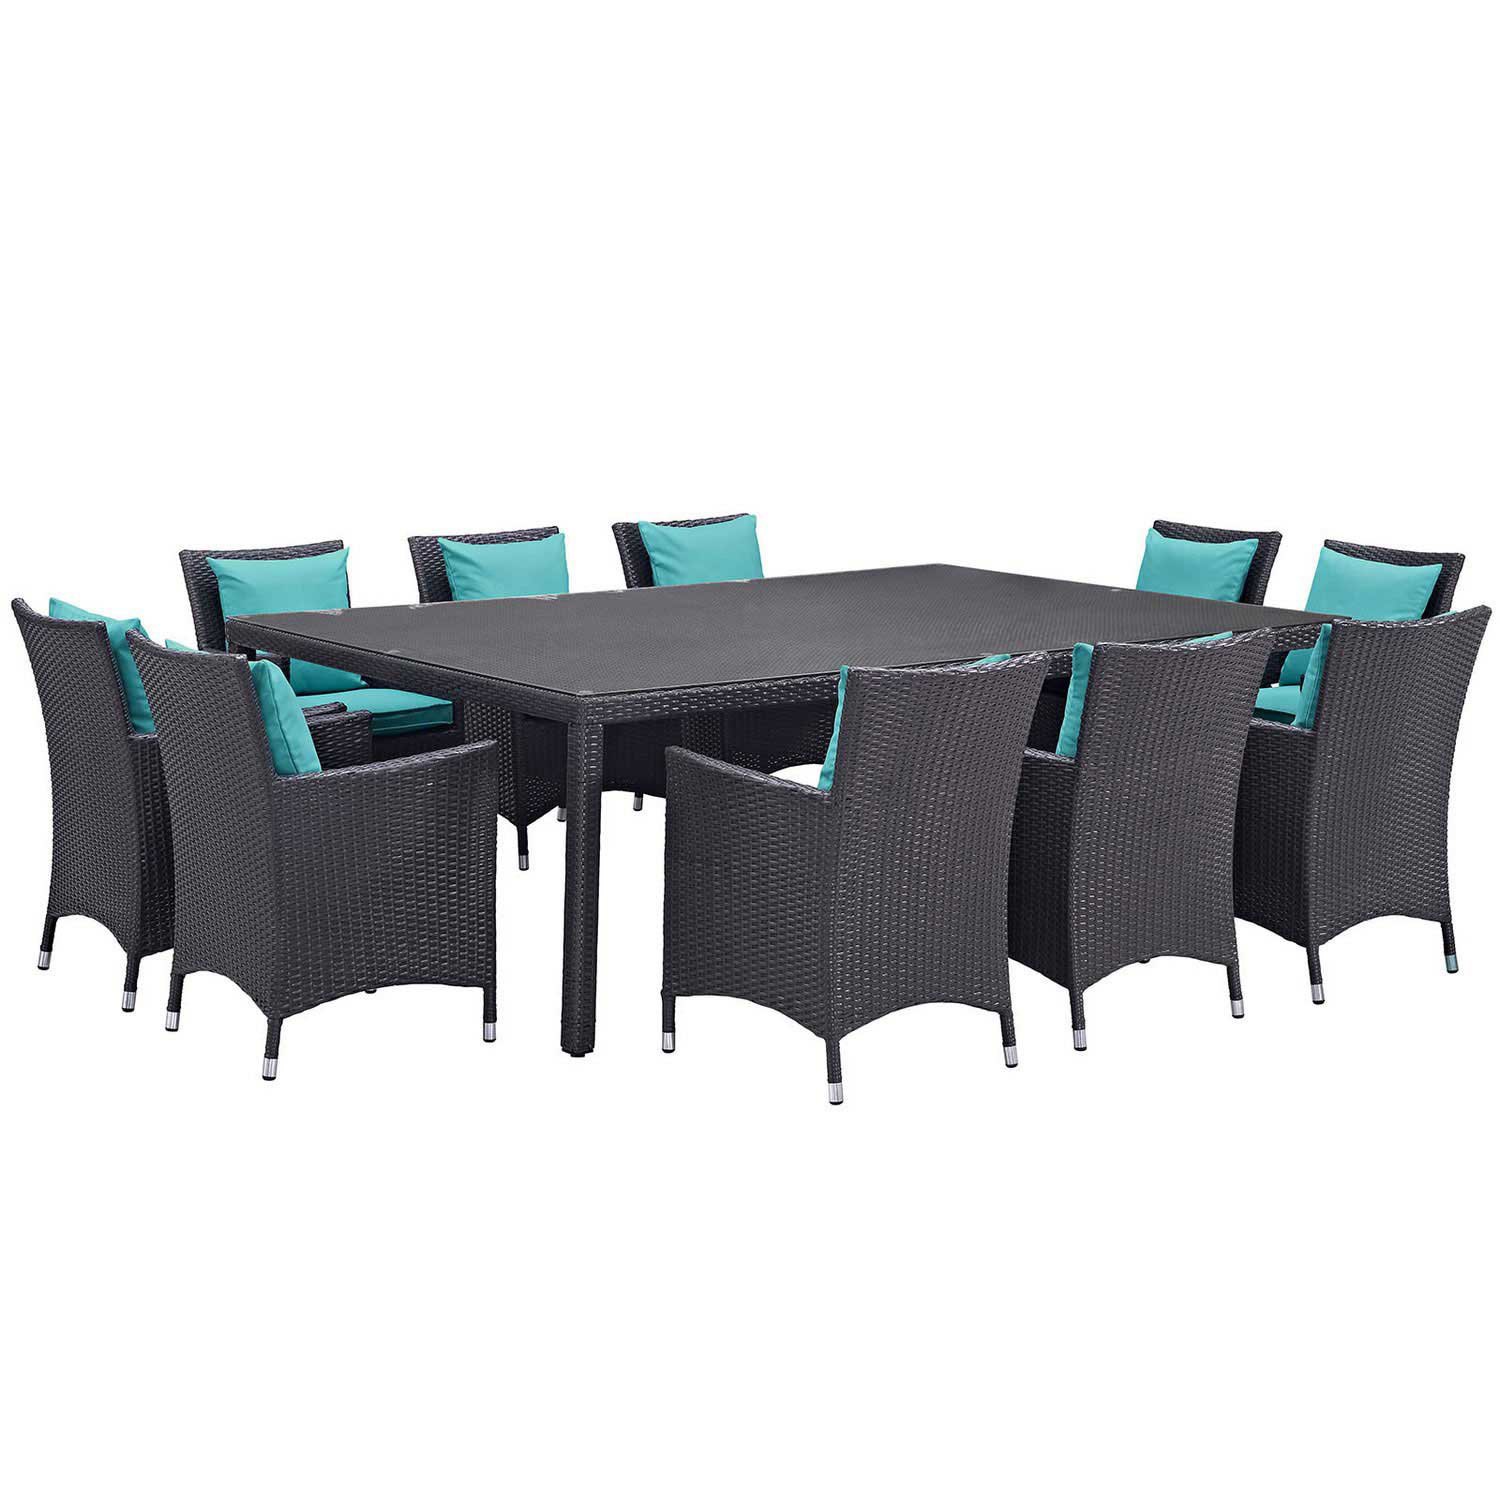 Modway Convene 11 Piece Outdoor Patio Dining Set - Espresso Turquoise